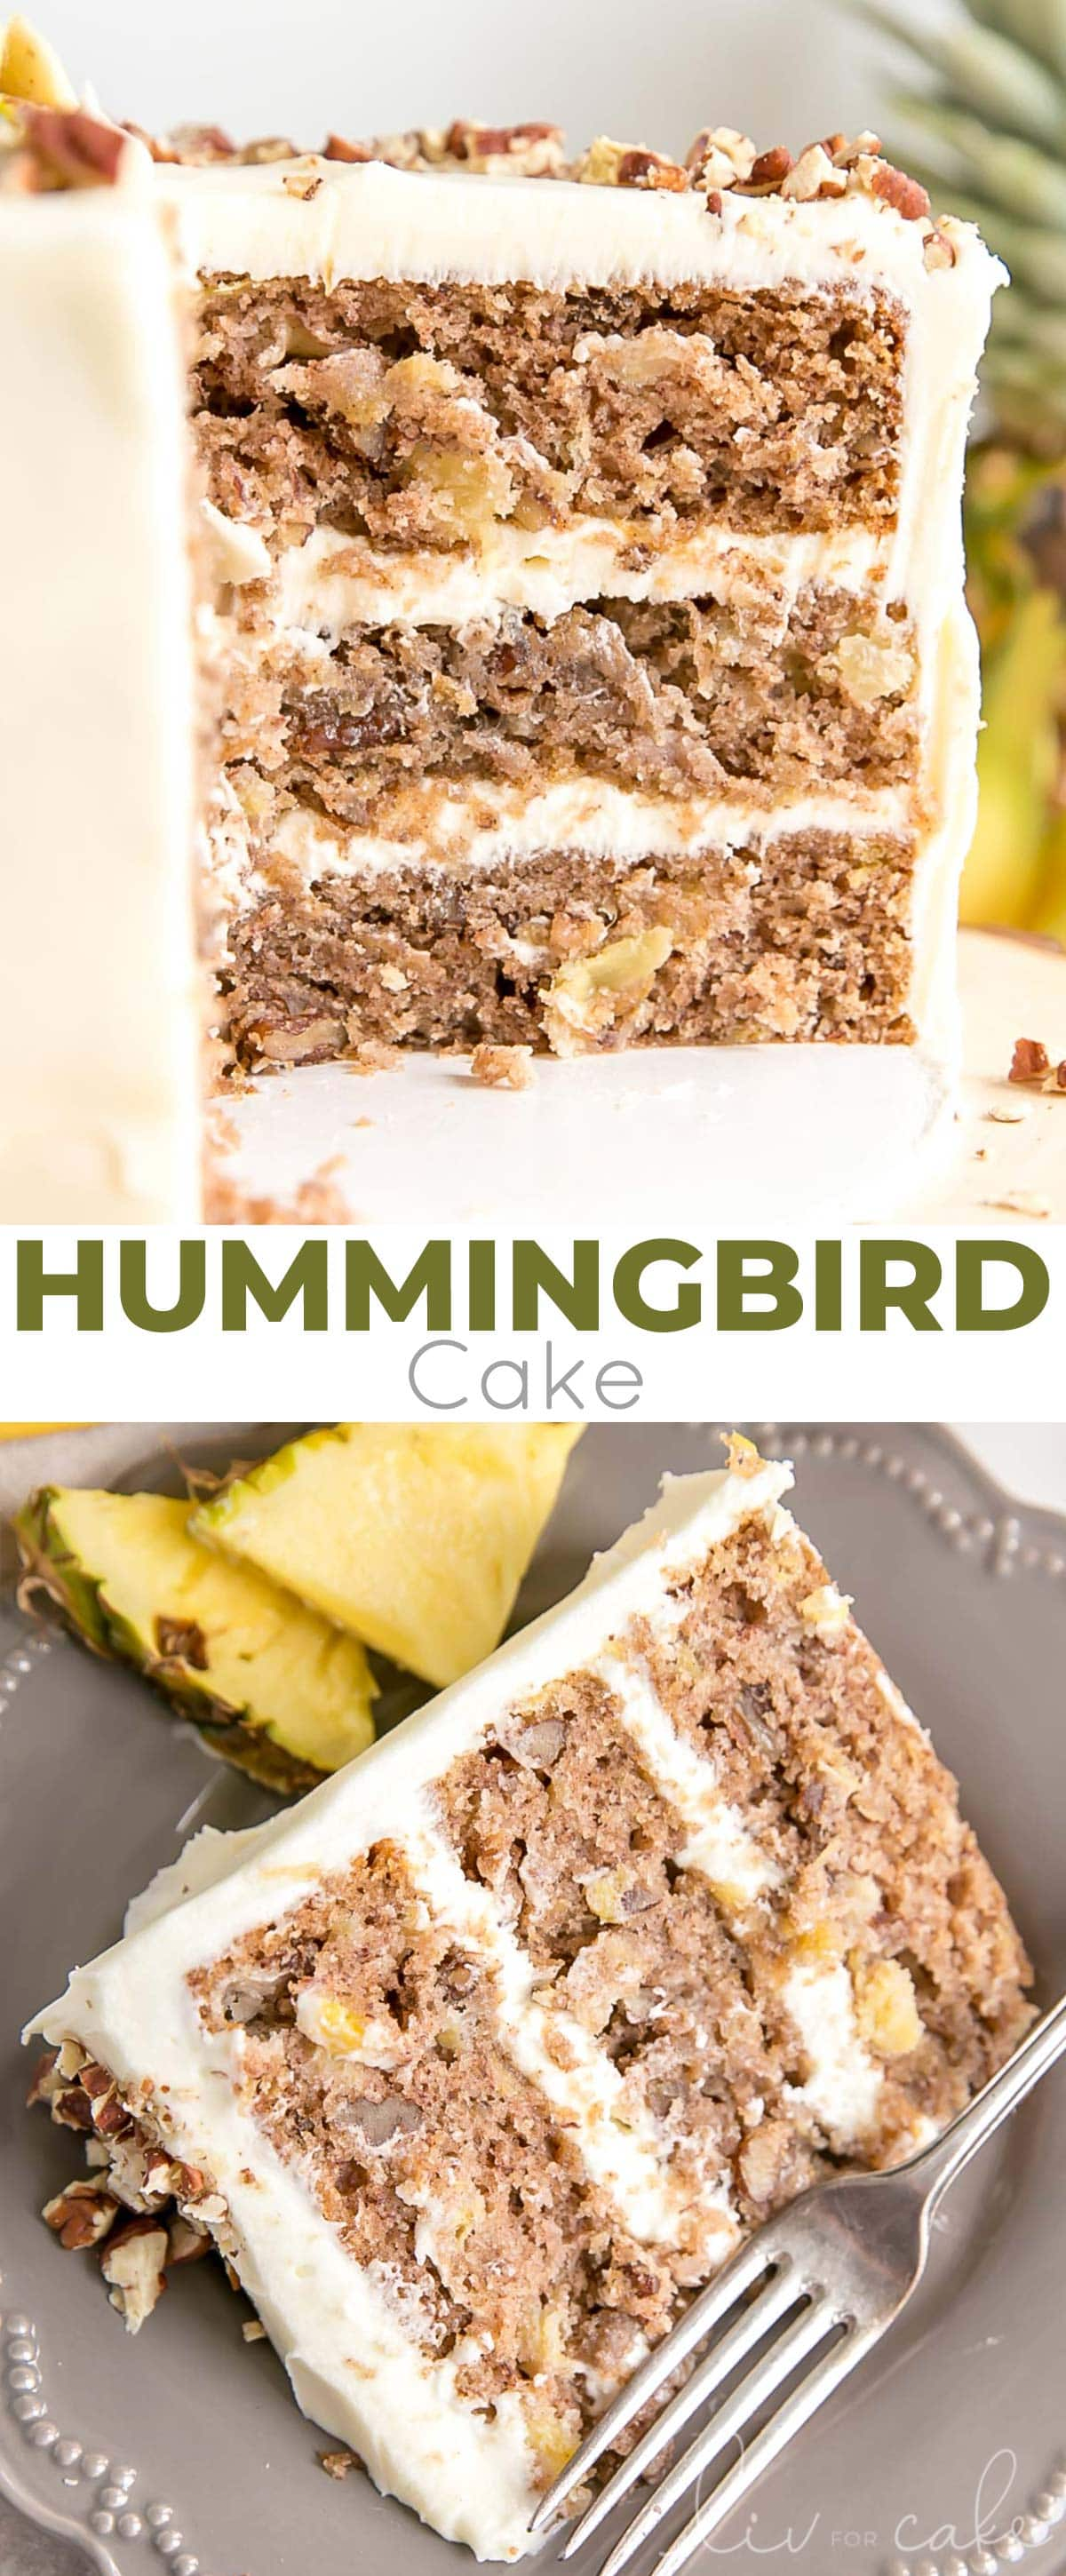 Hummingbird Cake photo collage